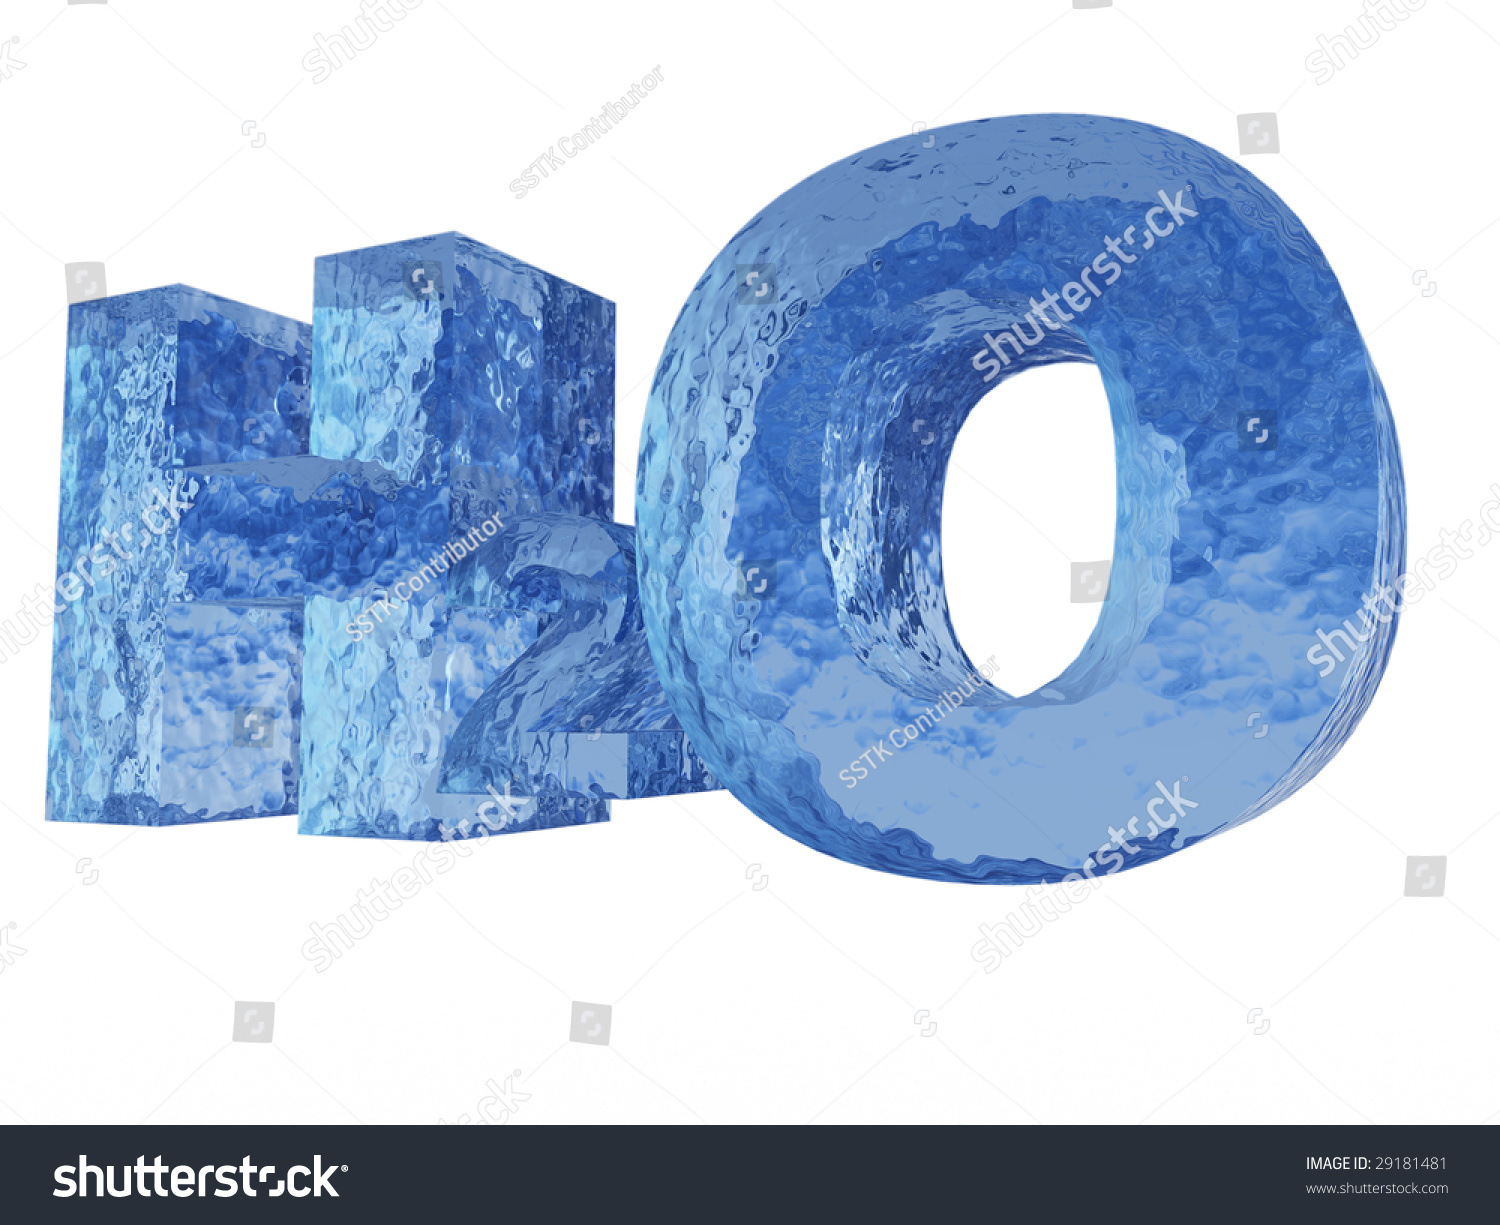 Chemistry symbol water h2o letters 3d stock illustration 29181481 chemistry symbol for water h2o letters 3d illustration biocorpaavc Images